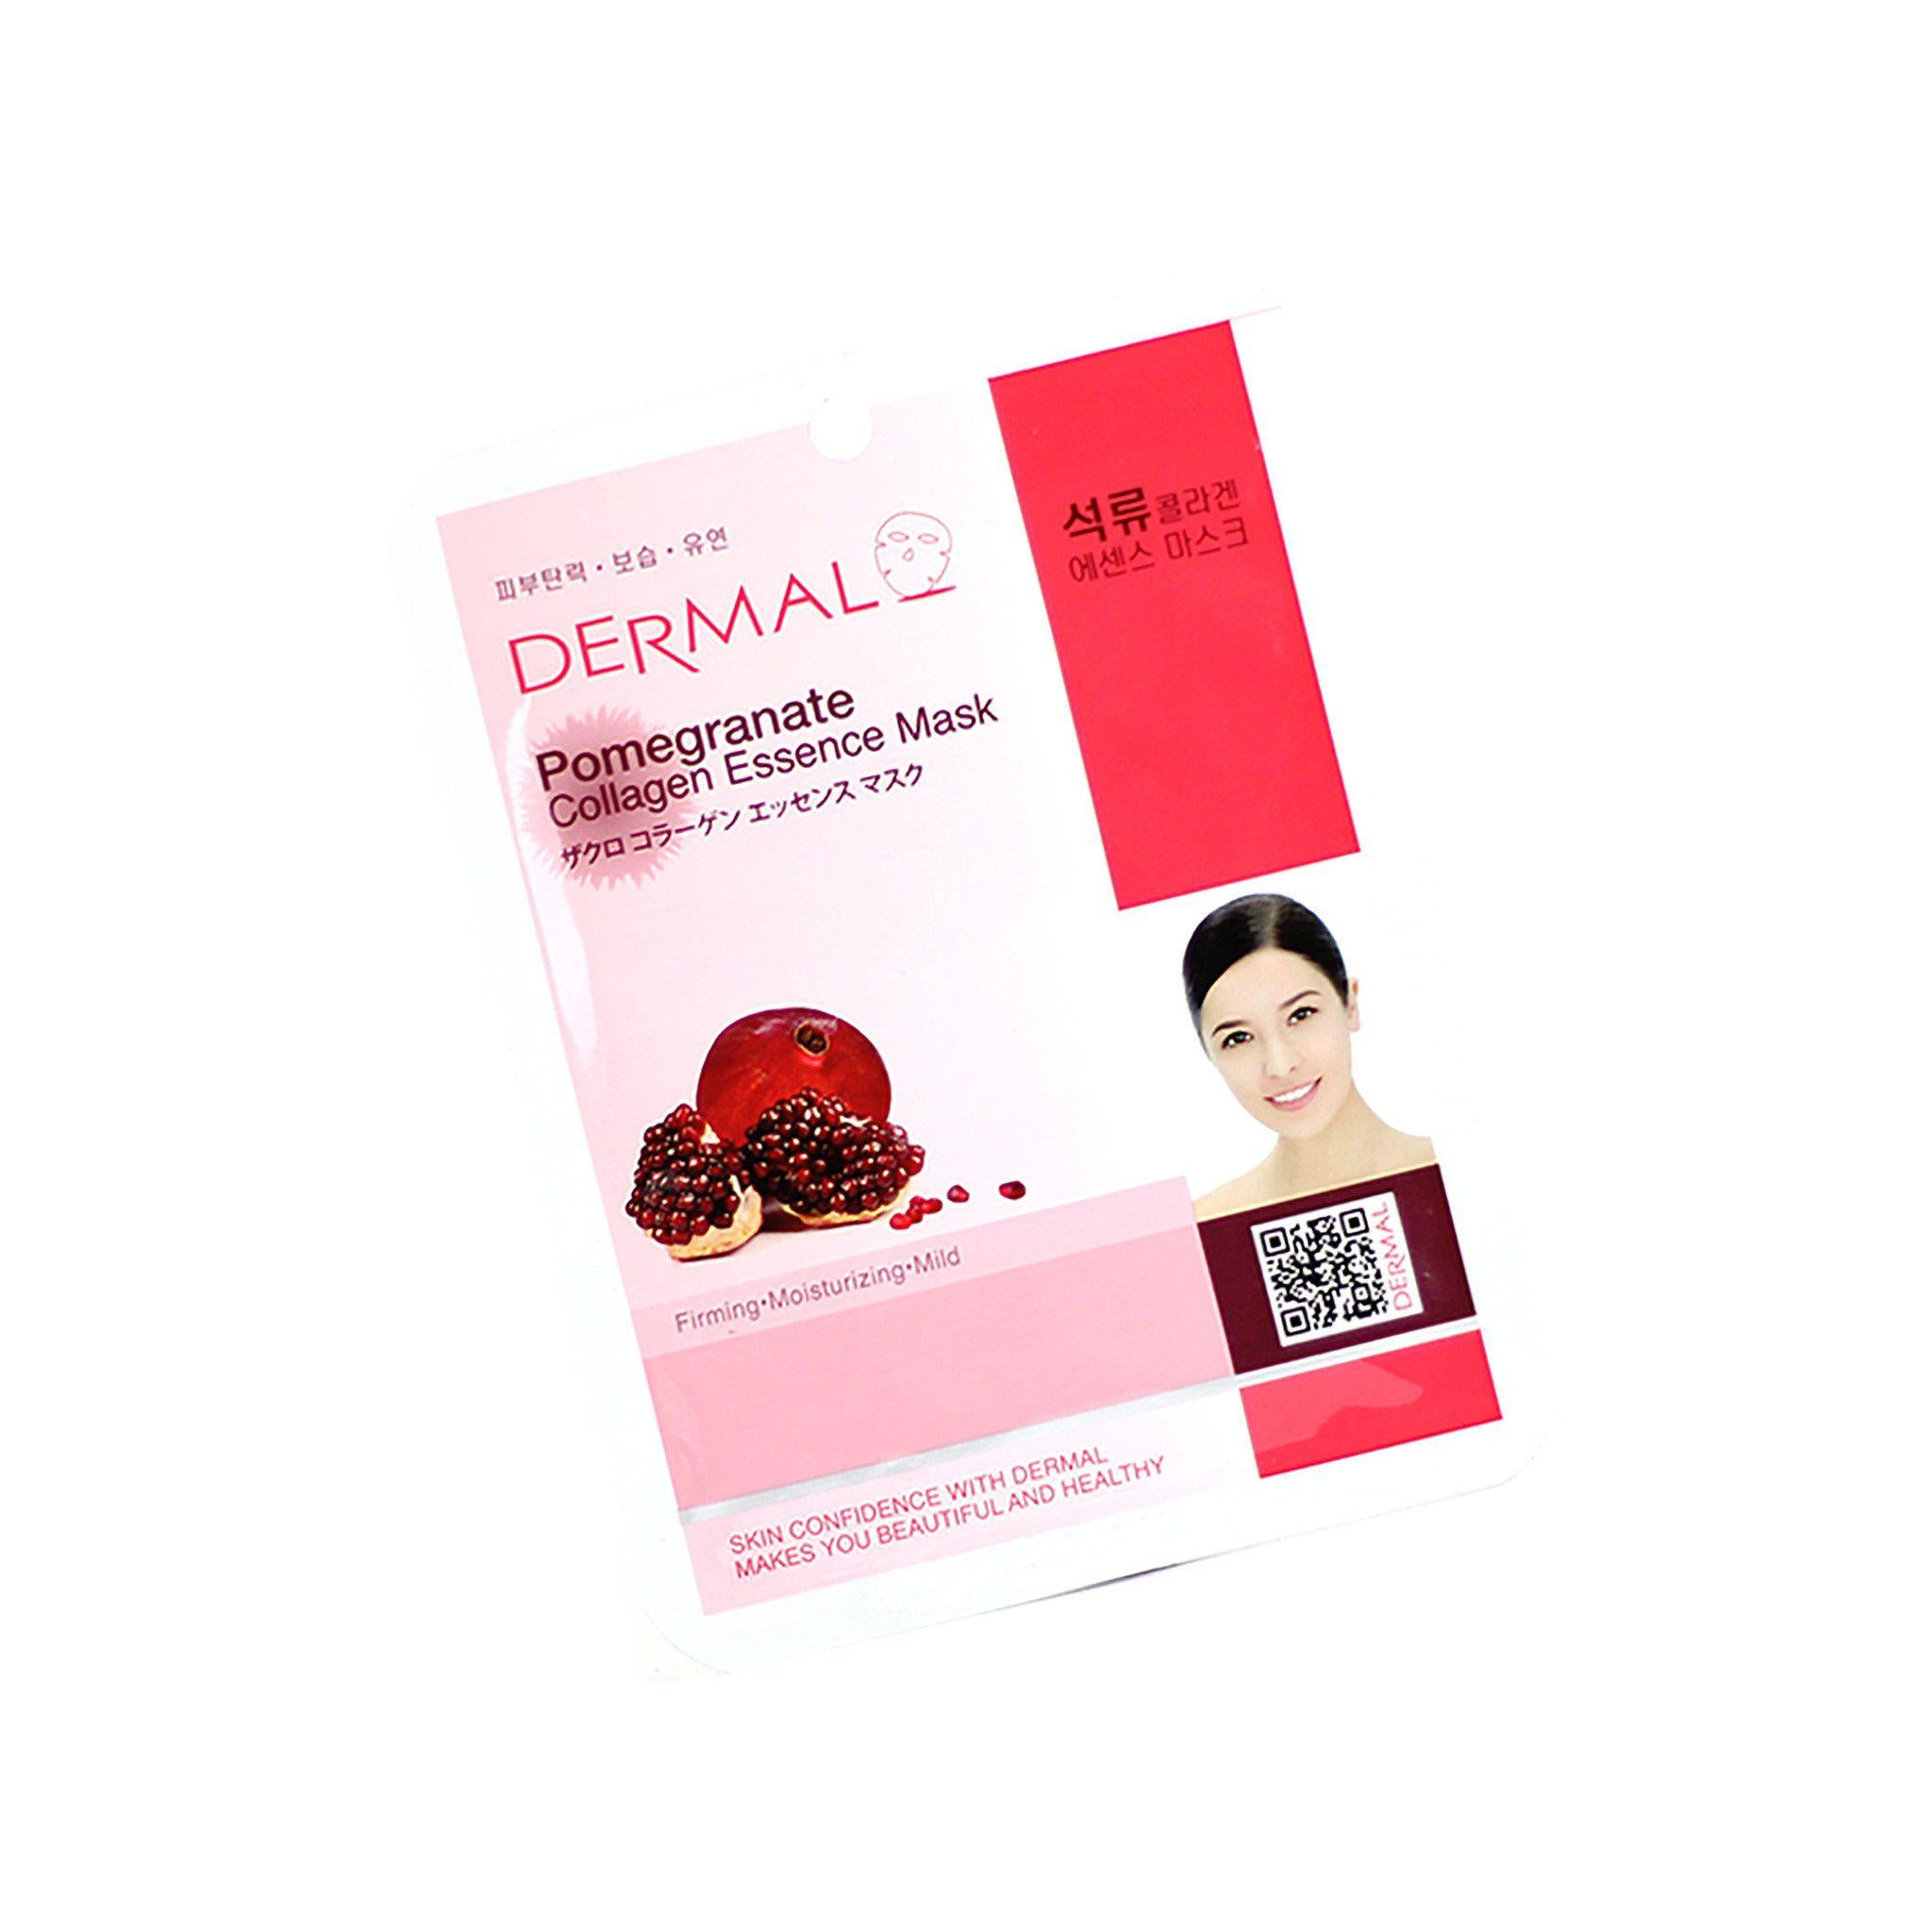 DERMAL MASCARILLA POMEGRANATE 1 PZA